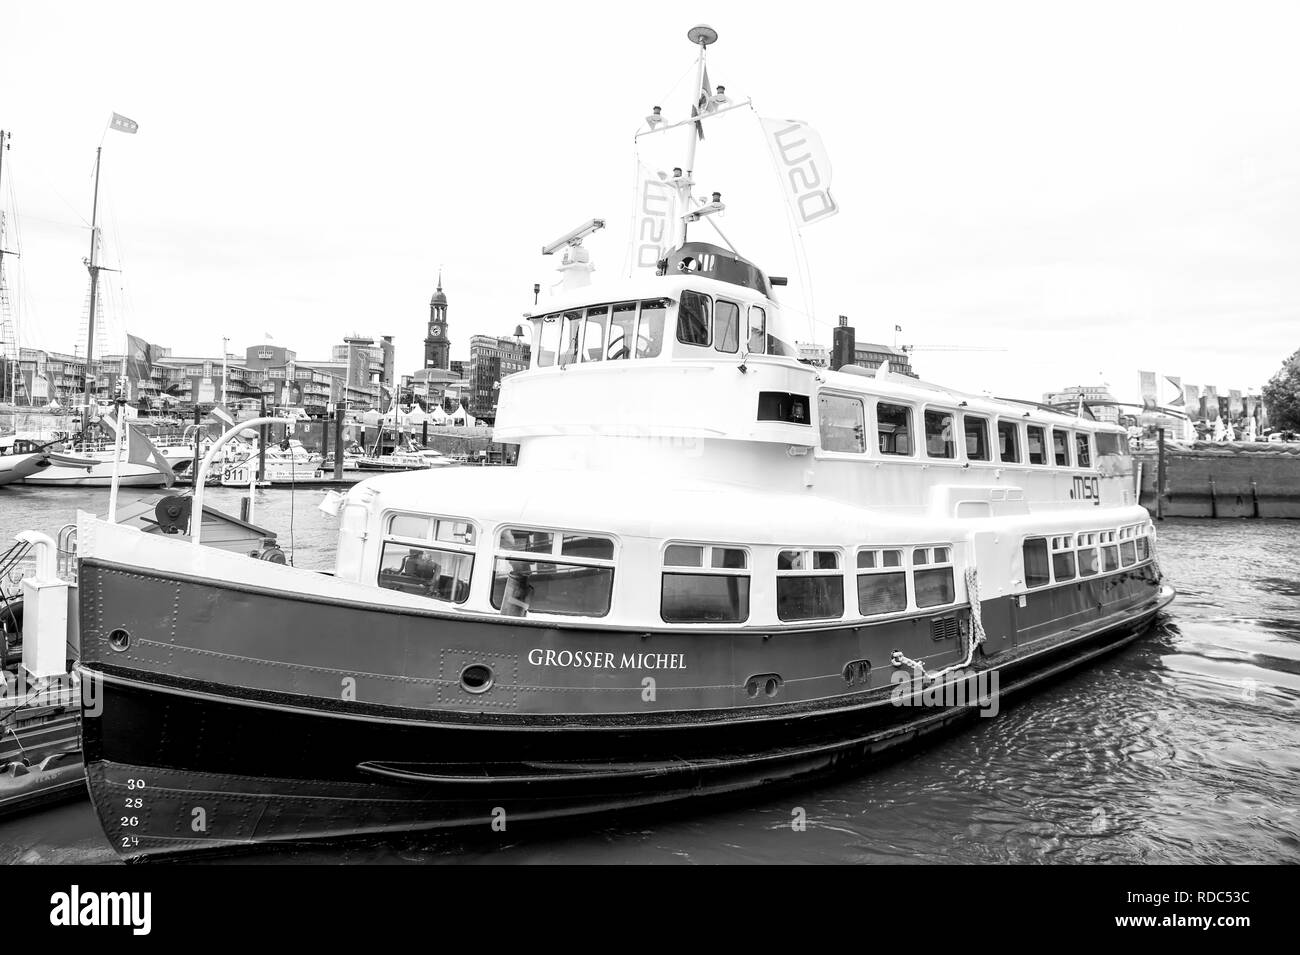 Hamburg, Germany - September 07, 2017: boat or ship at pier in Elbe river port in city. River transport, transportation. Water travel travelling, trip. Vacation discover, wanderlust. - Stock Image